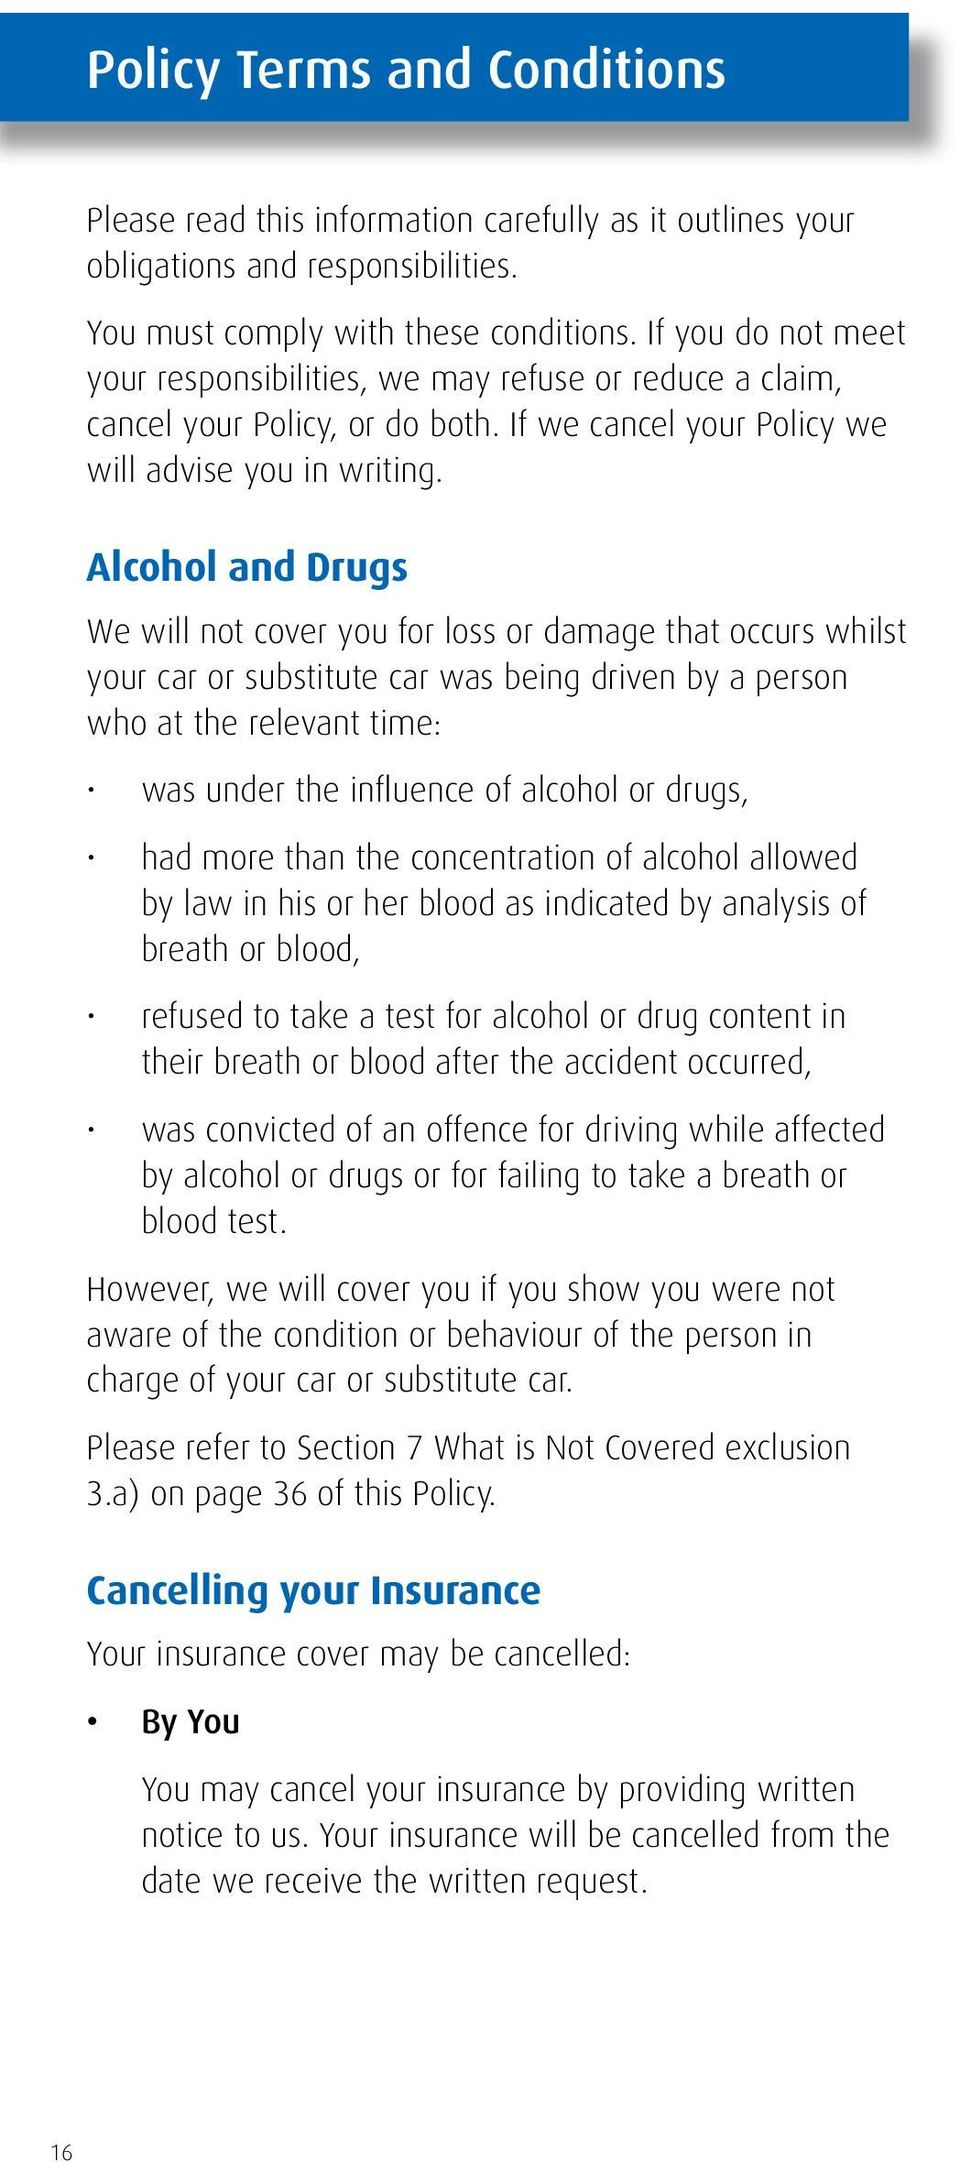 Alcohol and Drugs We will not cover you for loss or damage that occurs whilst your car or substitute car was being driven by a person who at the relevant time: was under the influence of alcohol or